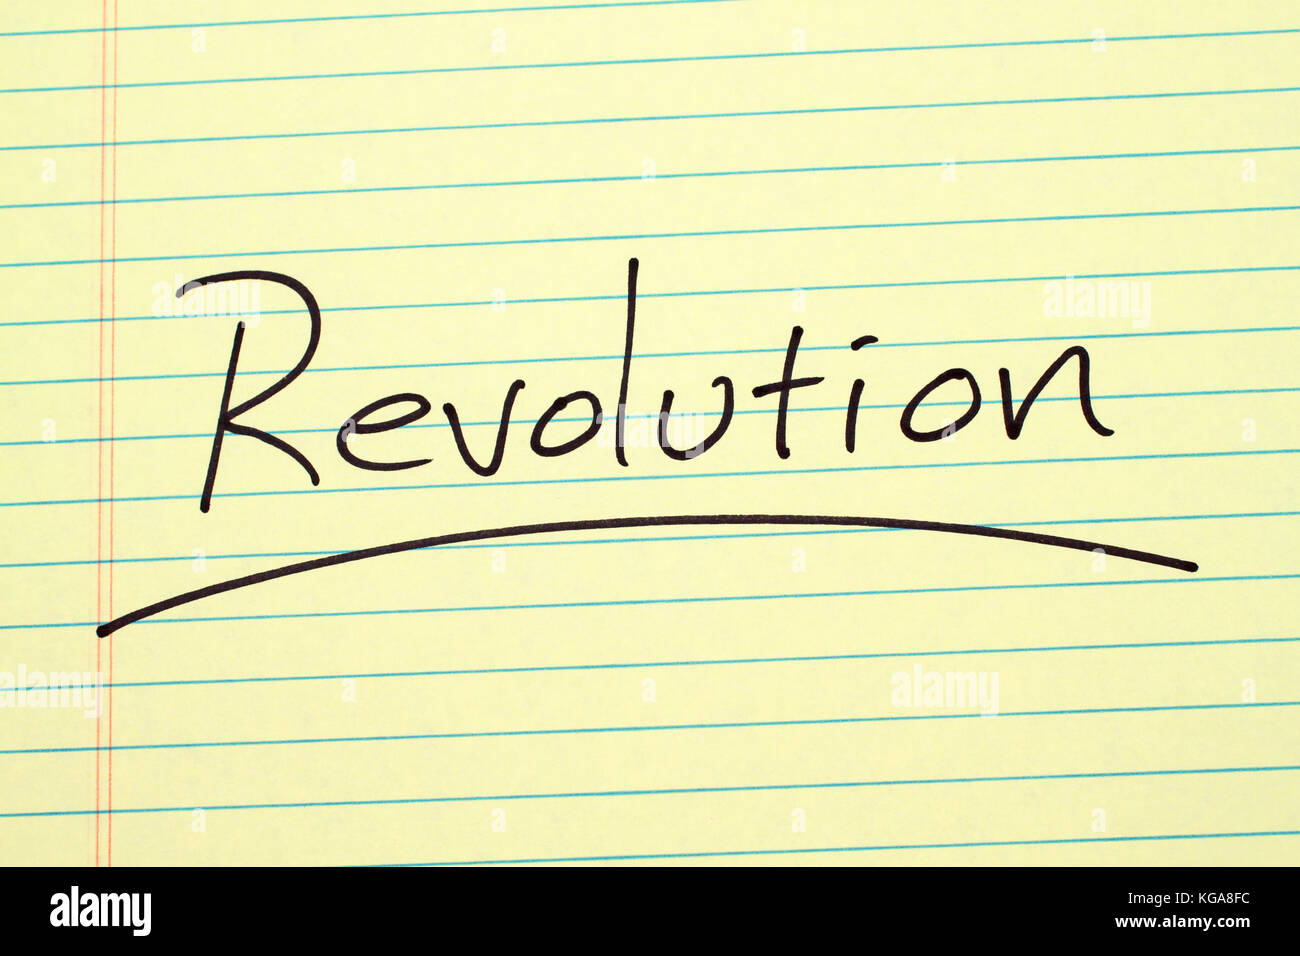 The word 'Revolution' underlined on a yellow legal pad - Stock Image